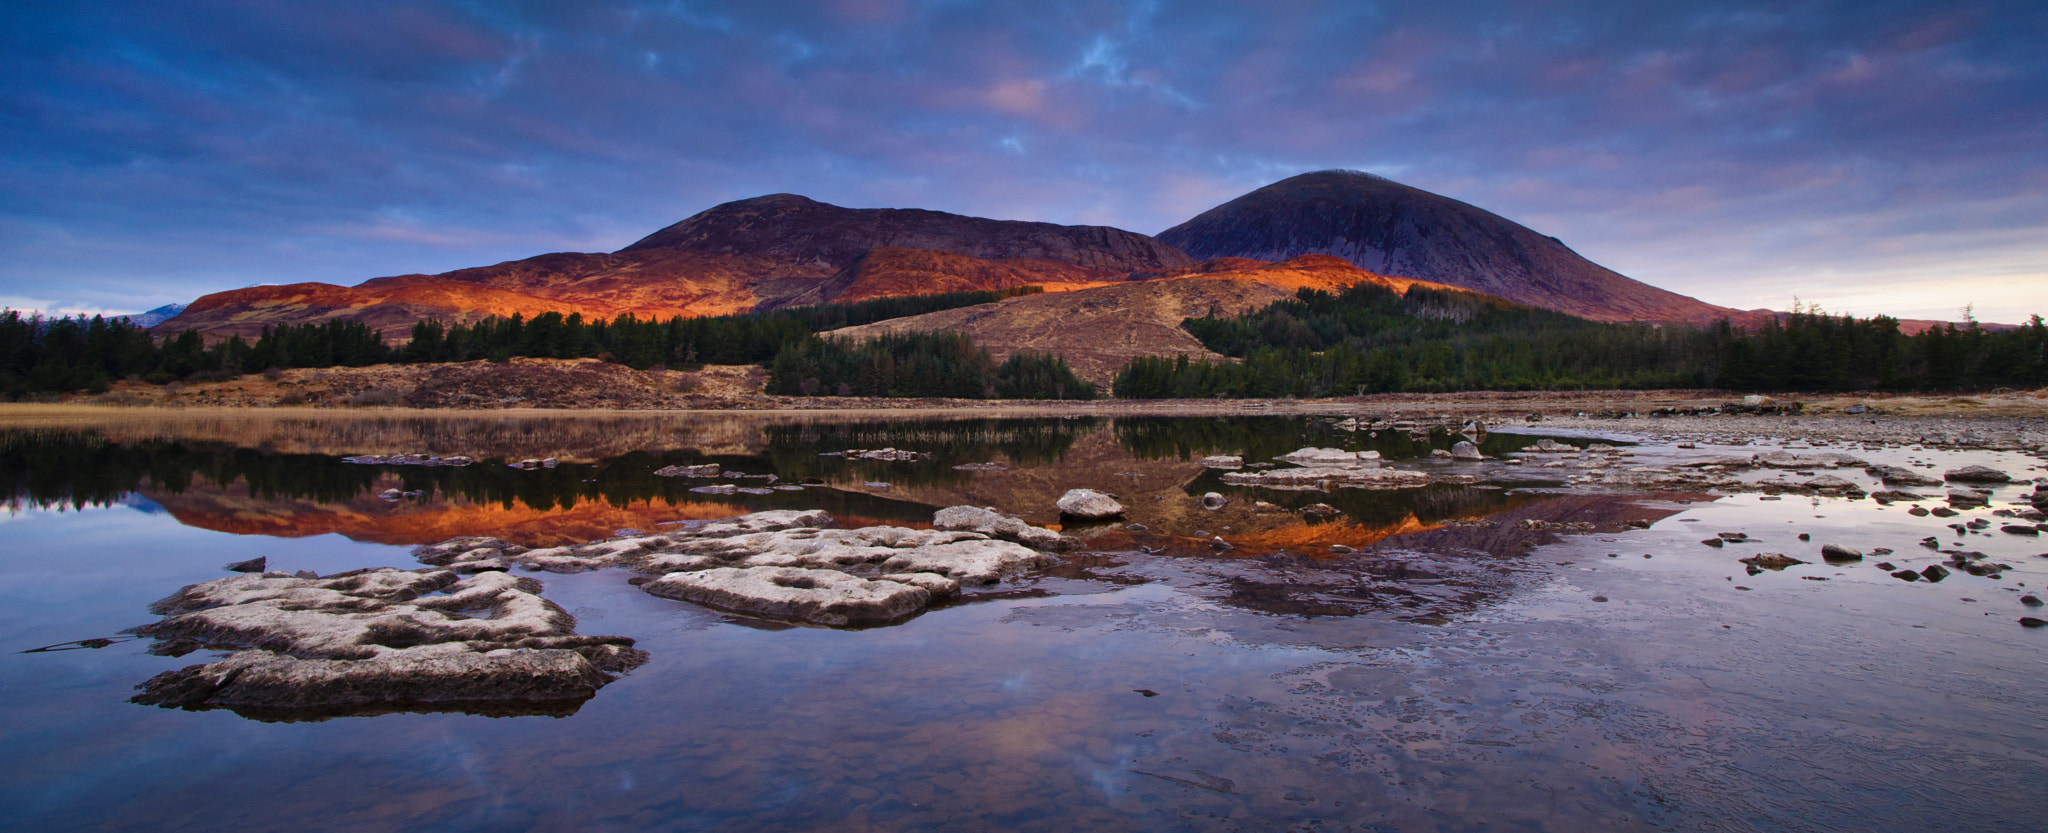 Photograph Beinn na Caillich by Kenny Muir on 500px